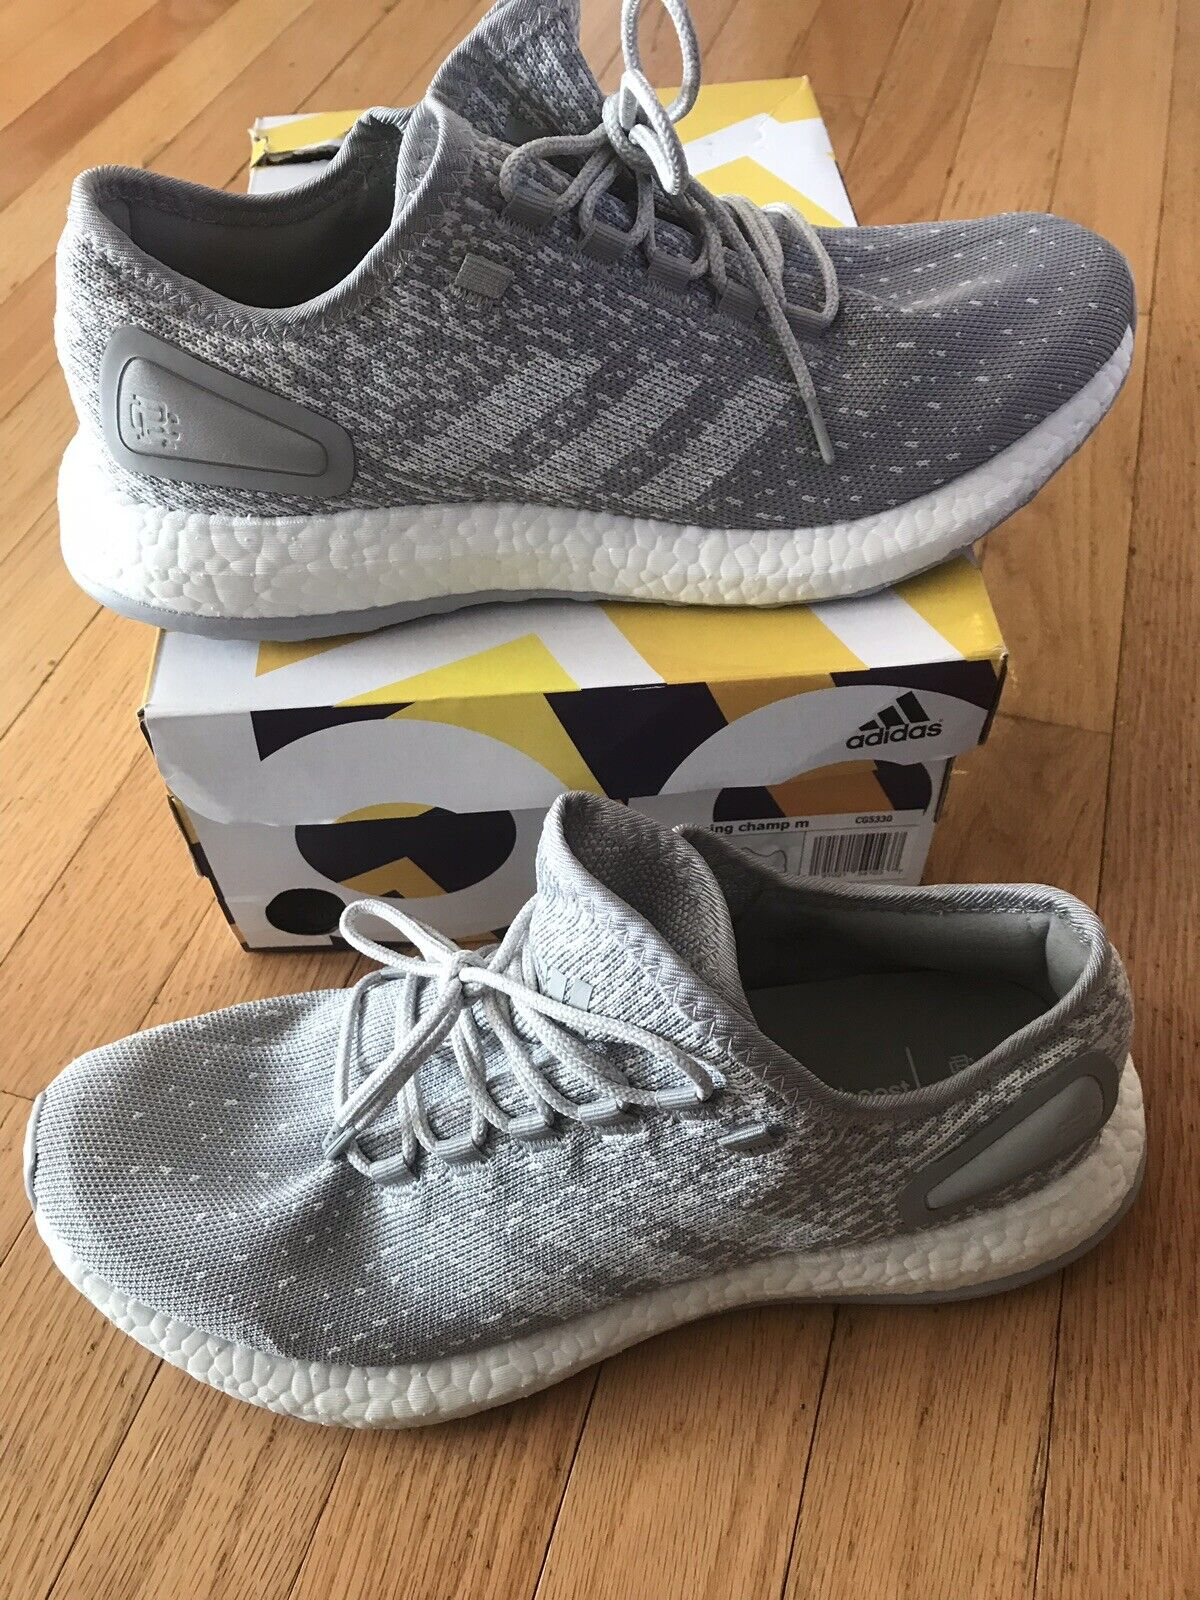 Adidas Pure Boost Reigning Reigning Reigning Champ 19da9b